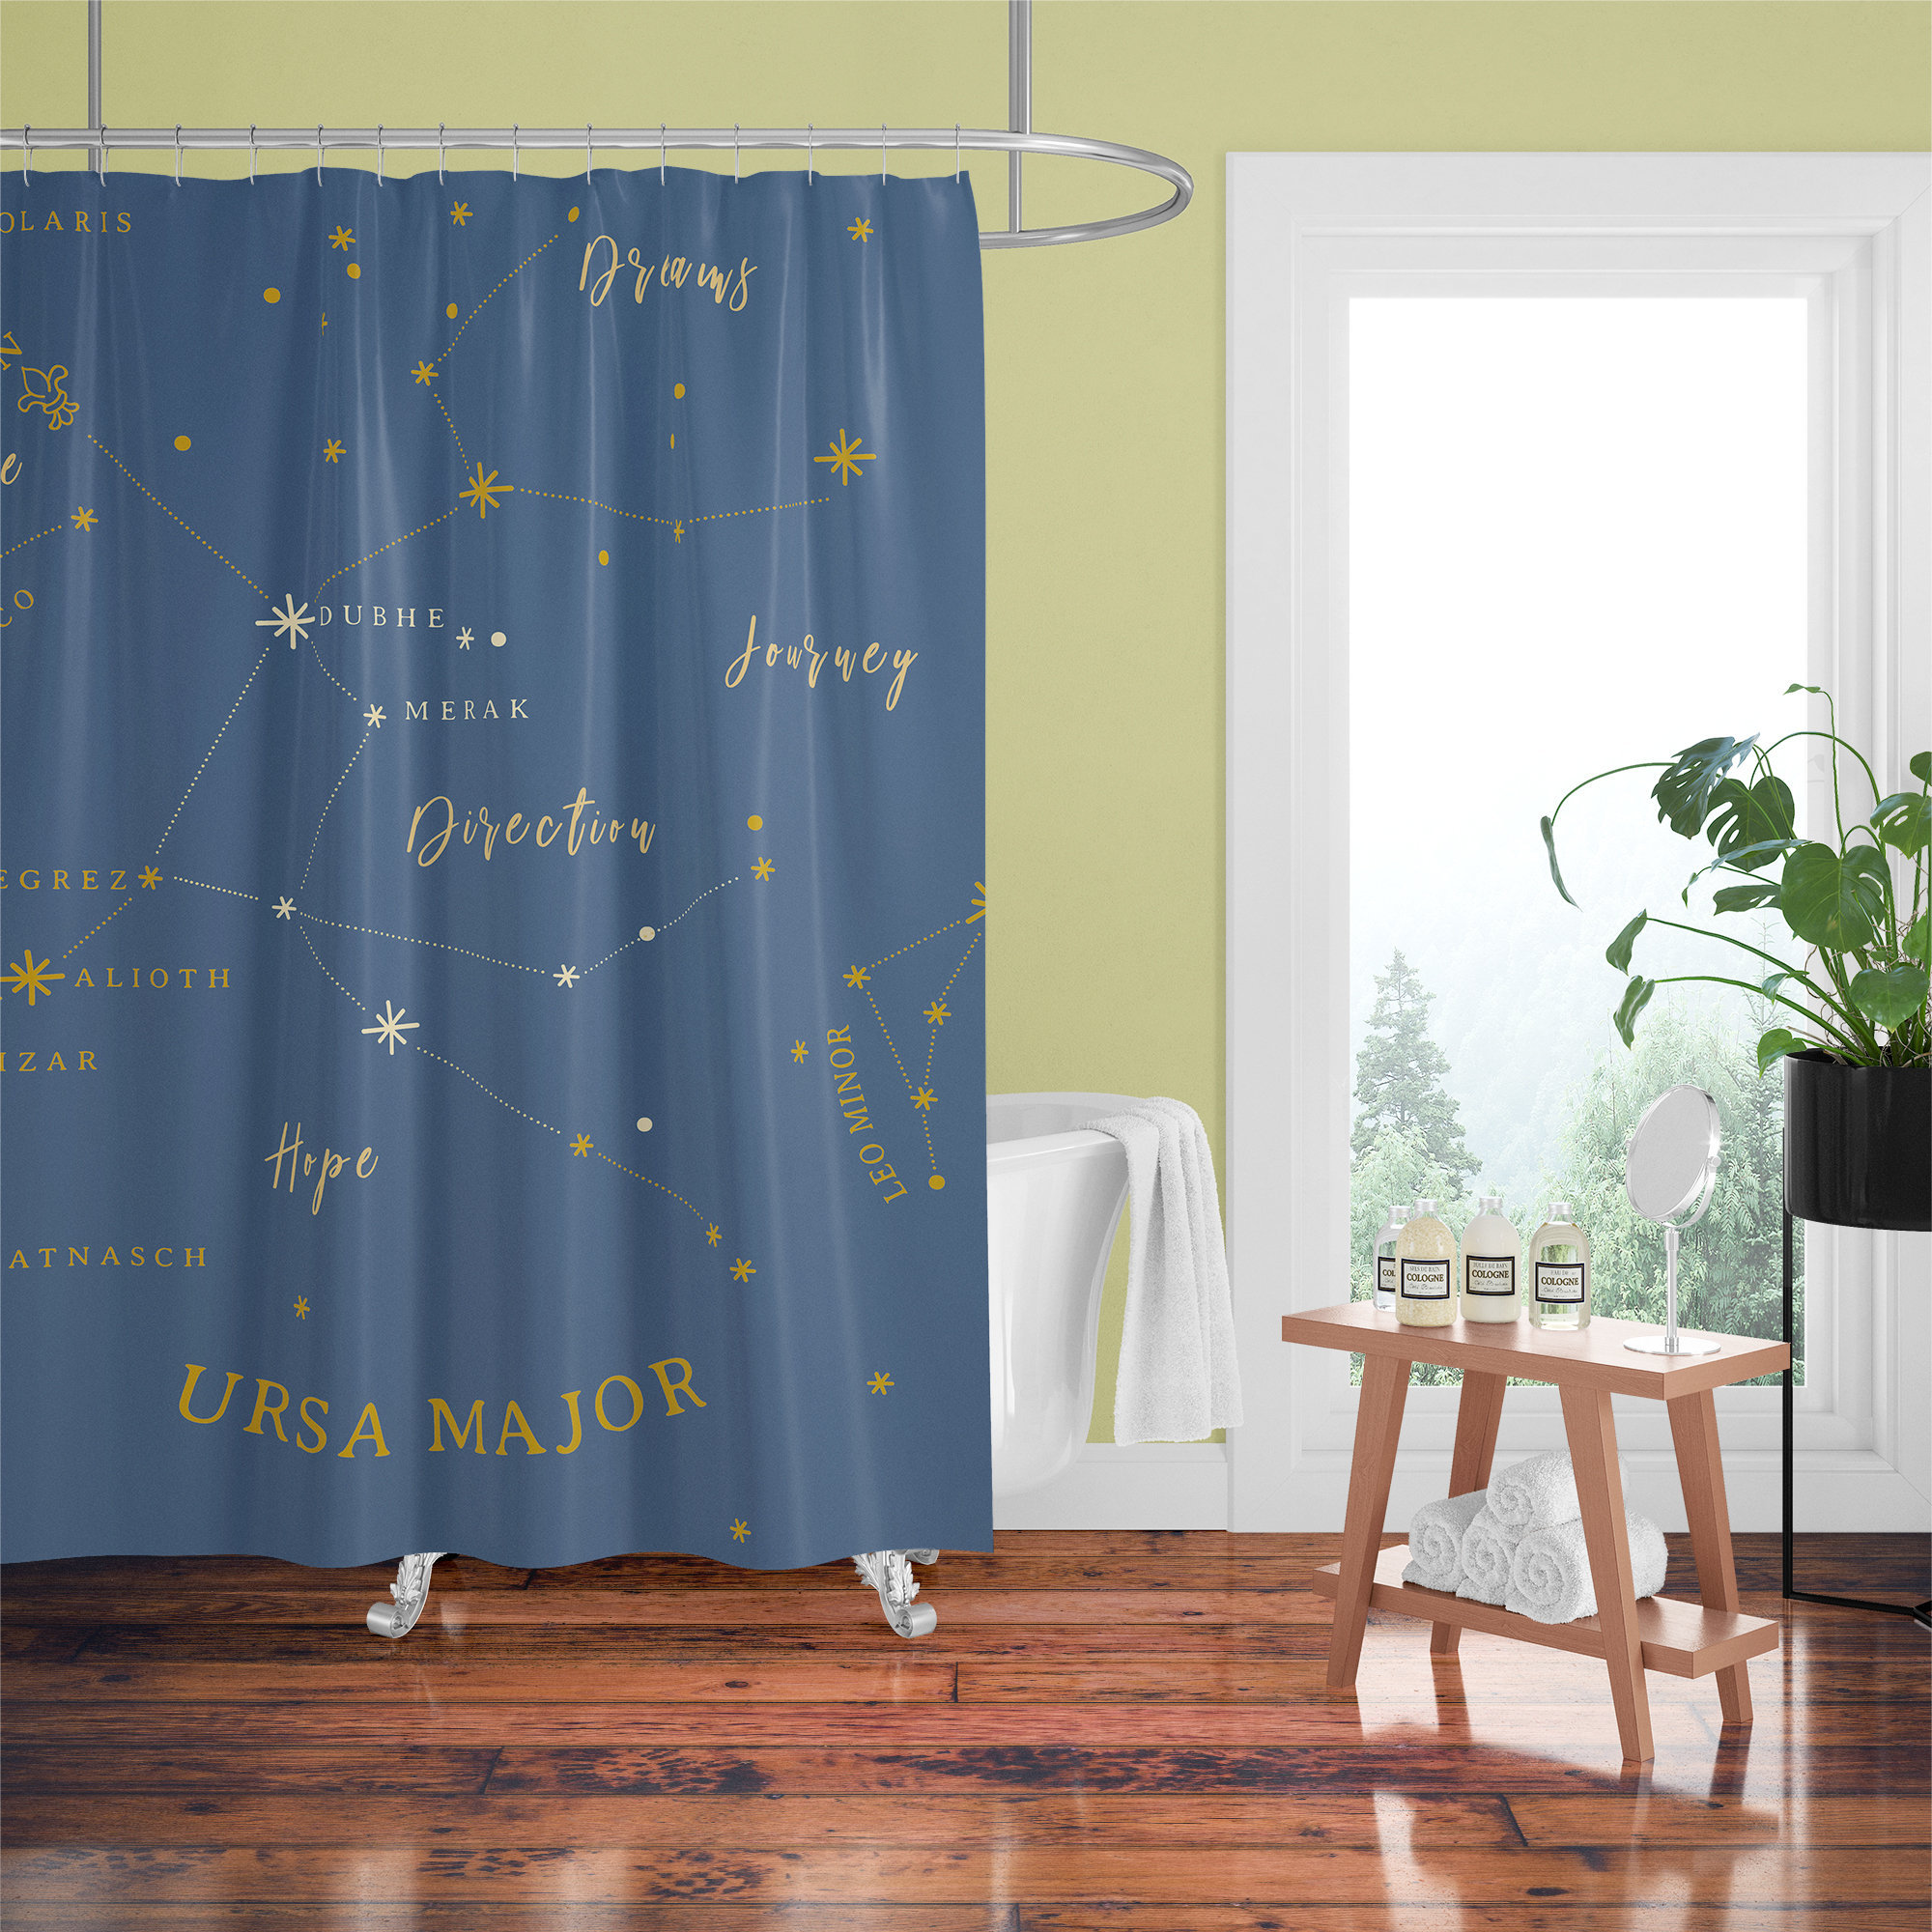 Constellation Shower Curtain Ursula Major Design Navy Blue